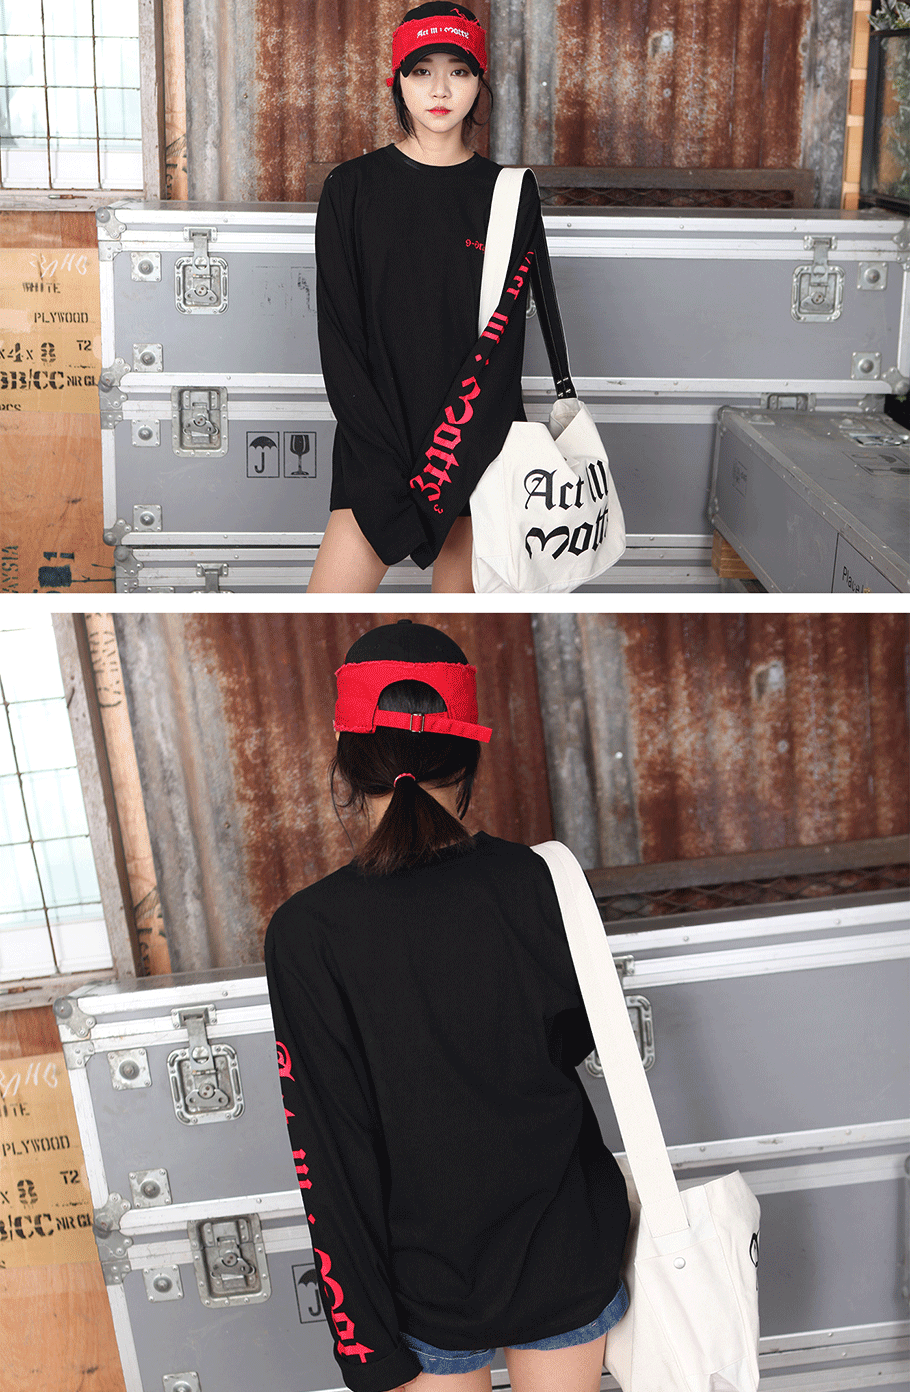 [MOTTE] G-Dragon - MESH BALLCAP TYPE 1 (Order can be canceled cause of producing issue)